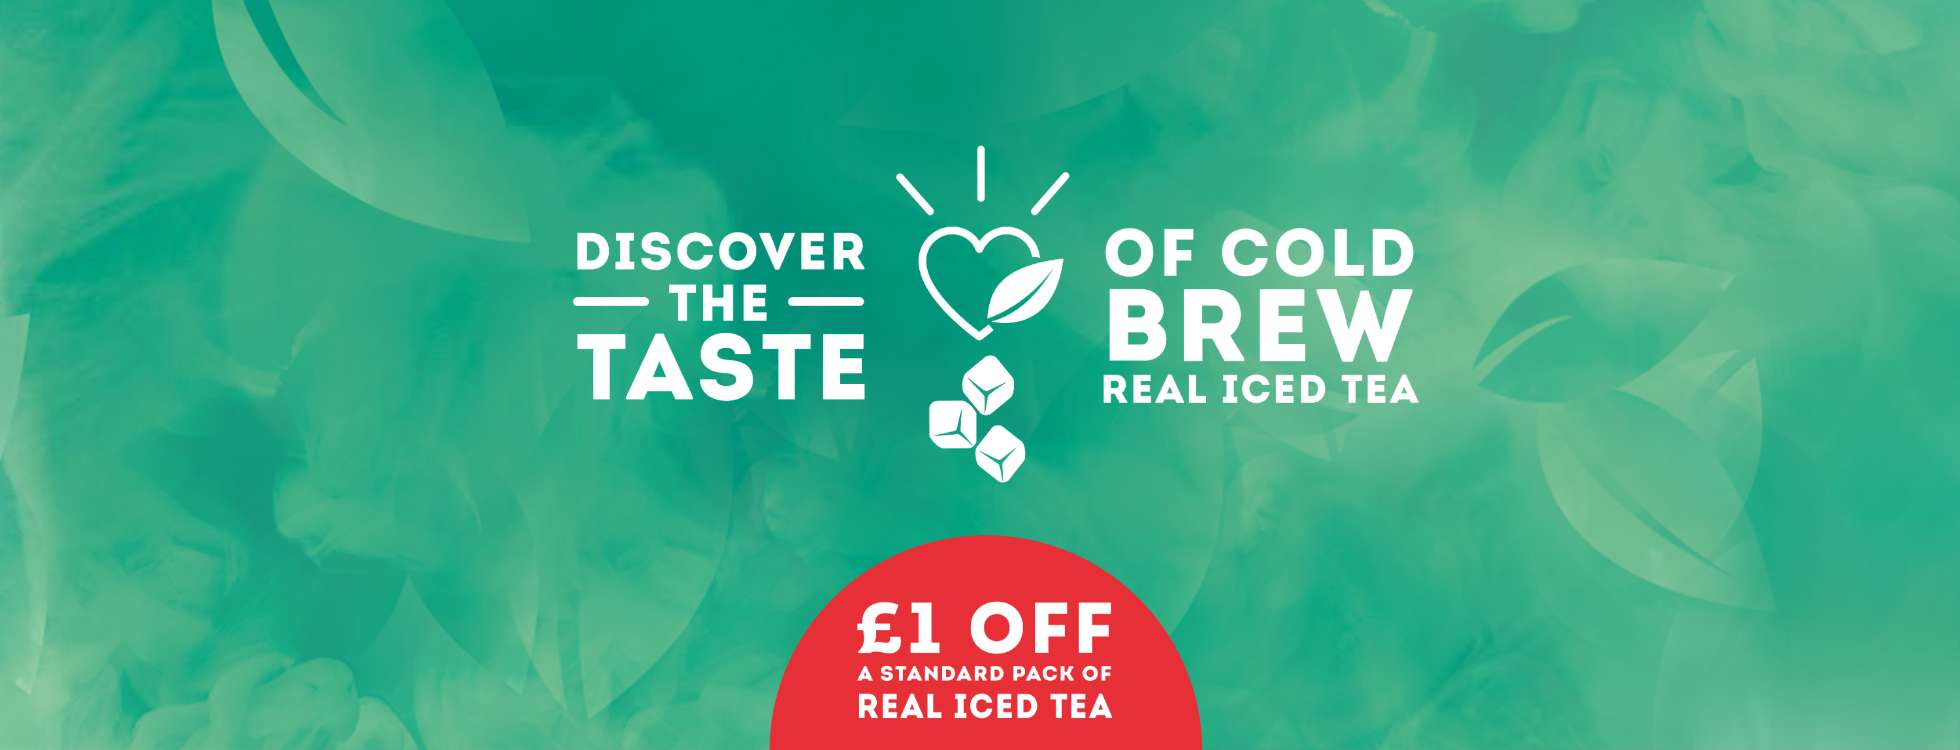 Real Iced Tea £1 Off Offers Banner image